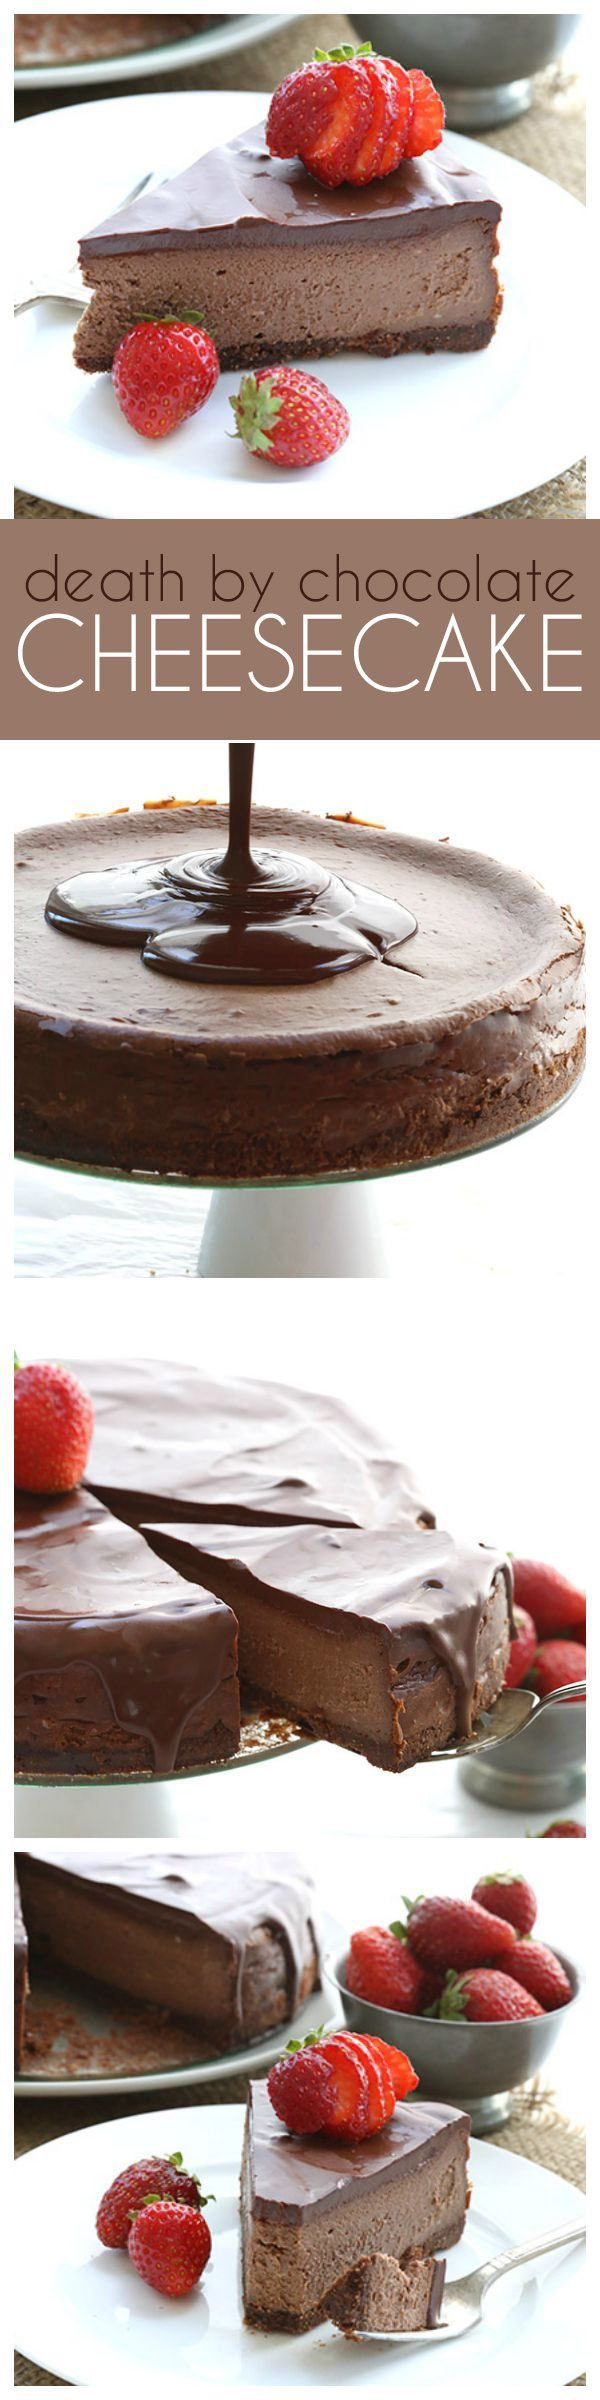 The best low carb chocolate cheesecake recipe, bar non. Accept no substitutes. THM Keto Banting Recipe.  via @dreamaboutfood